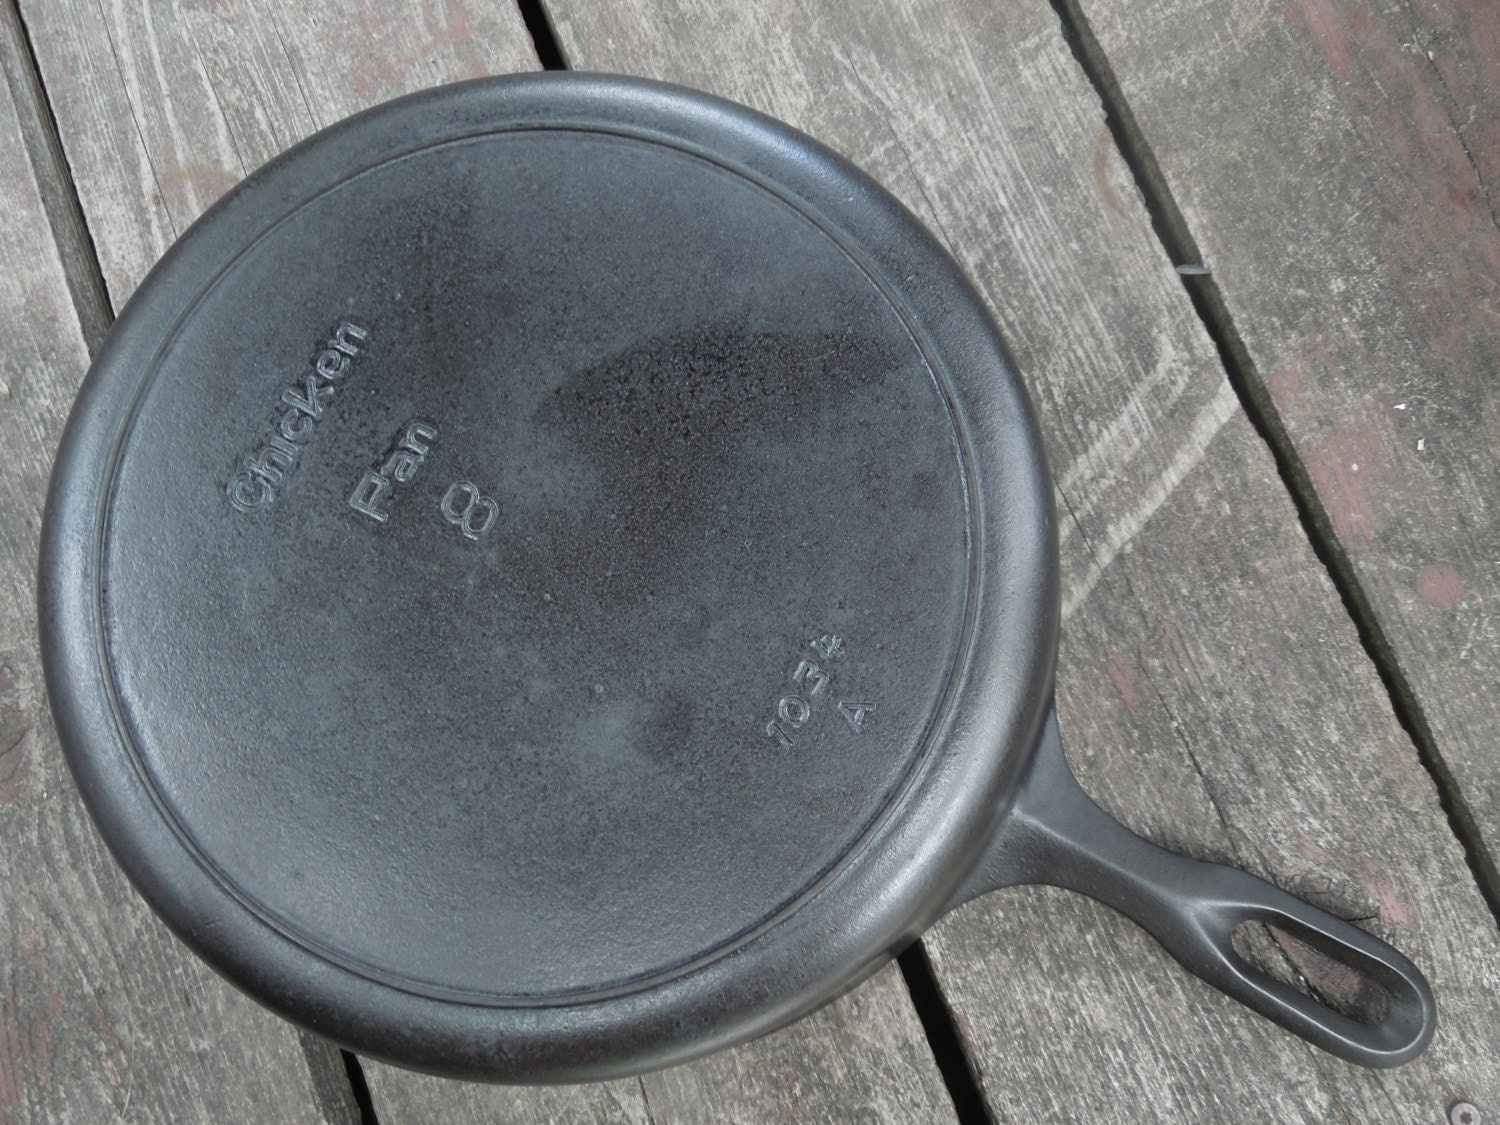 Griswold cast iron skillet mountain line number deep